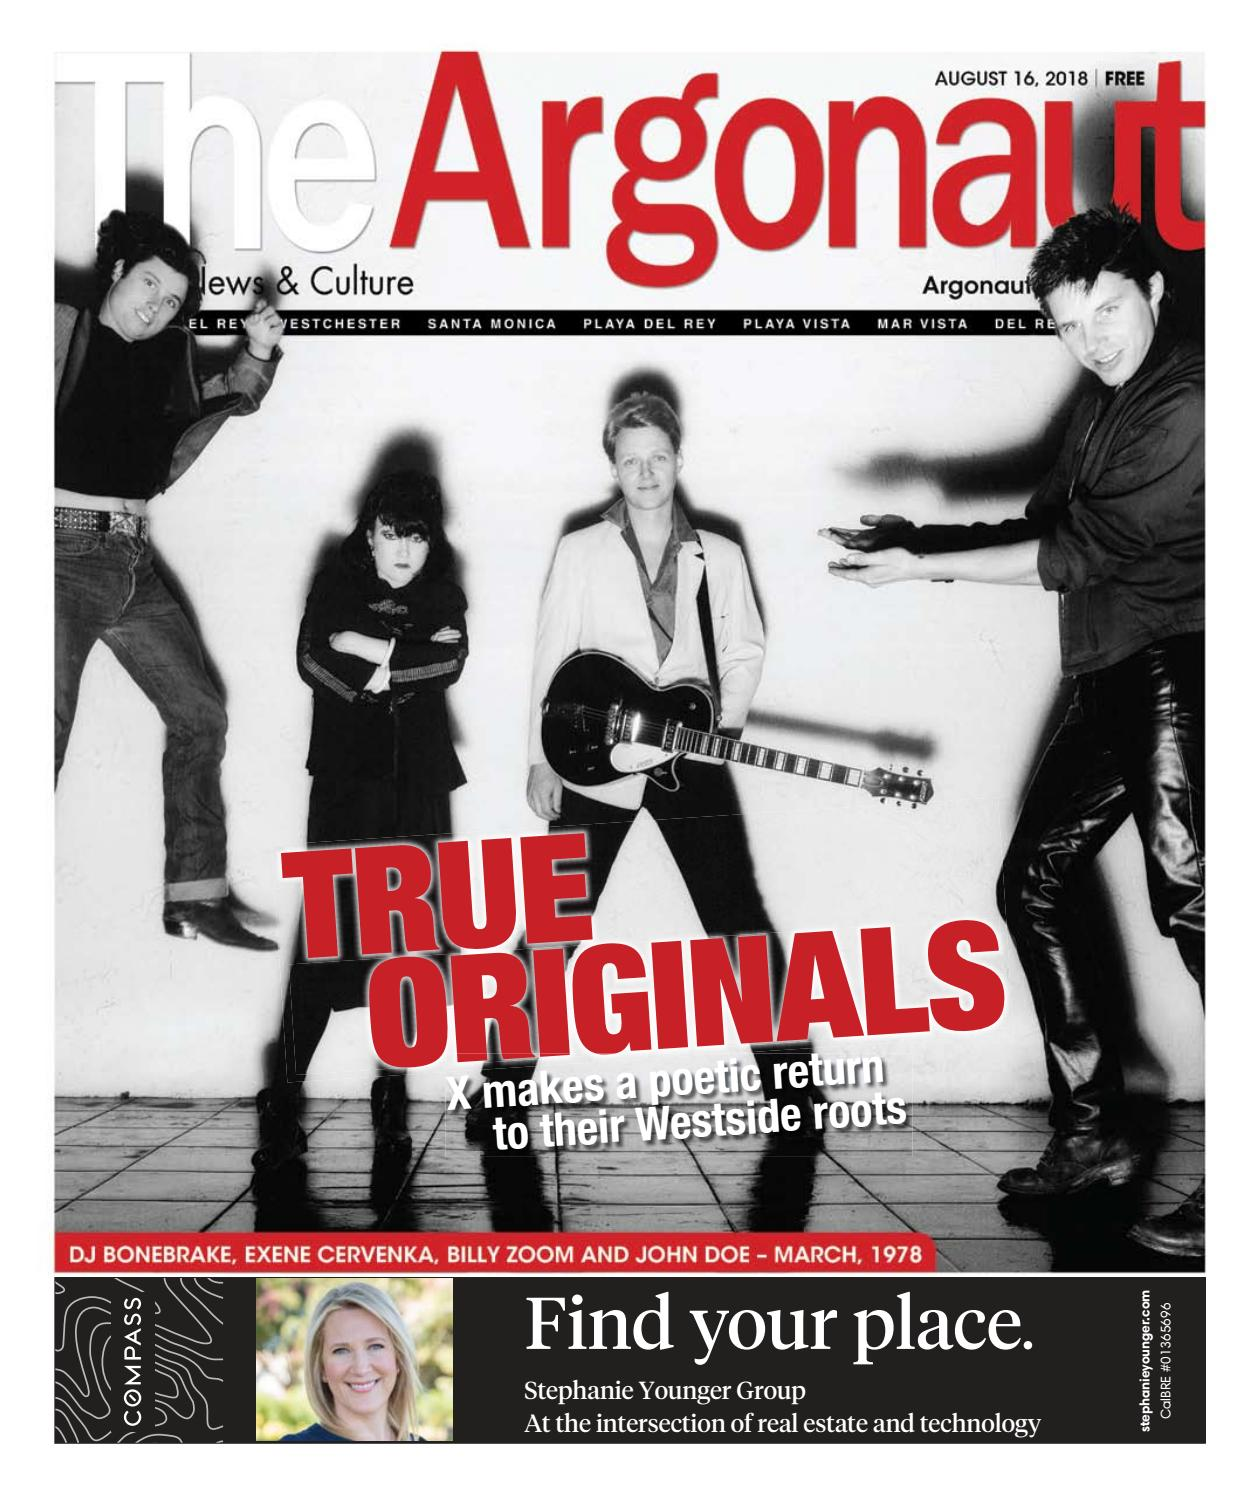 The Argonaut Newspaper By Kate Issuu Armando Caruso 828 White Beauty Blender With Handle